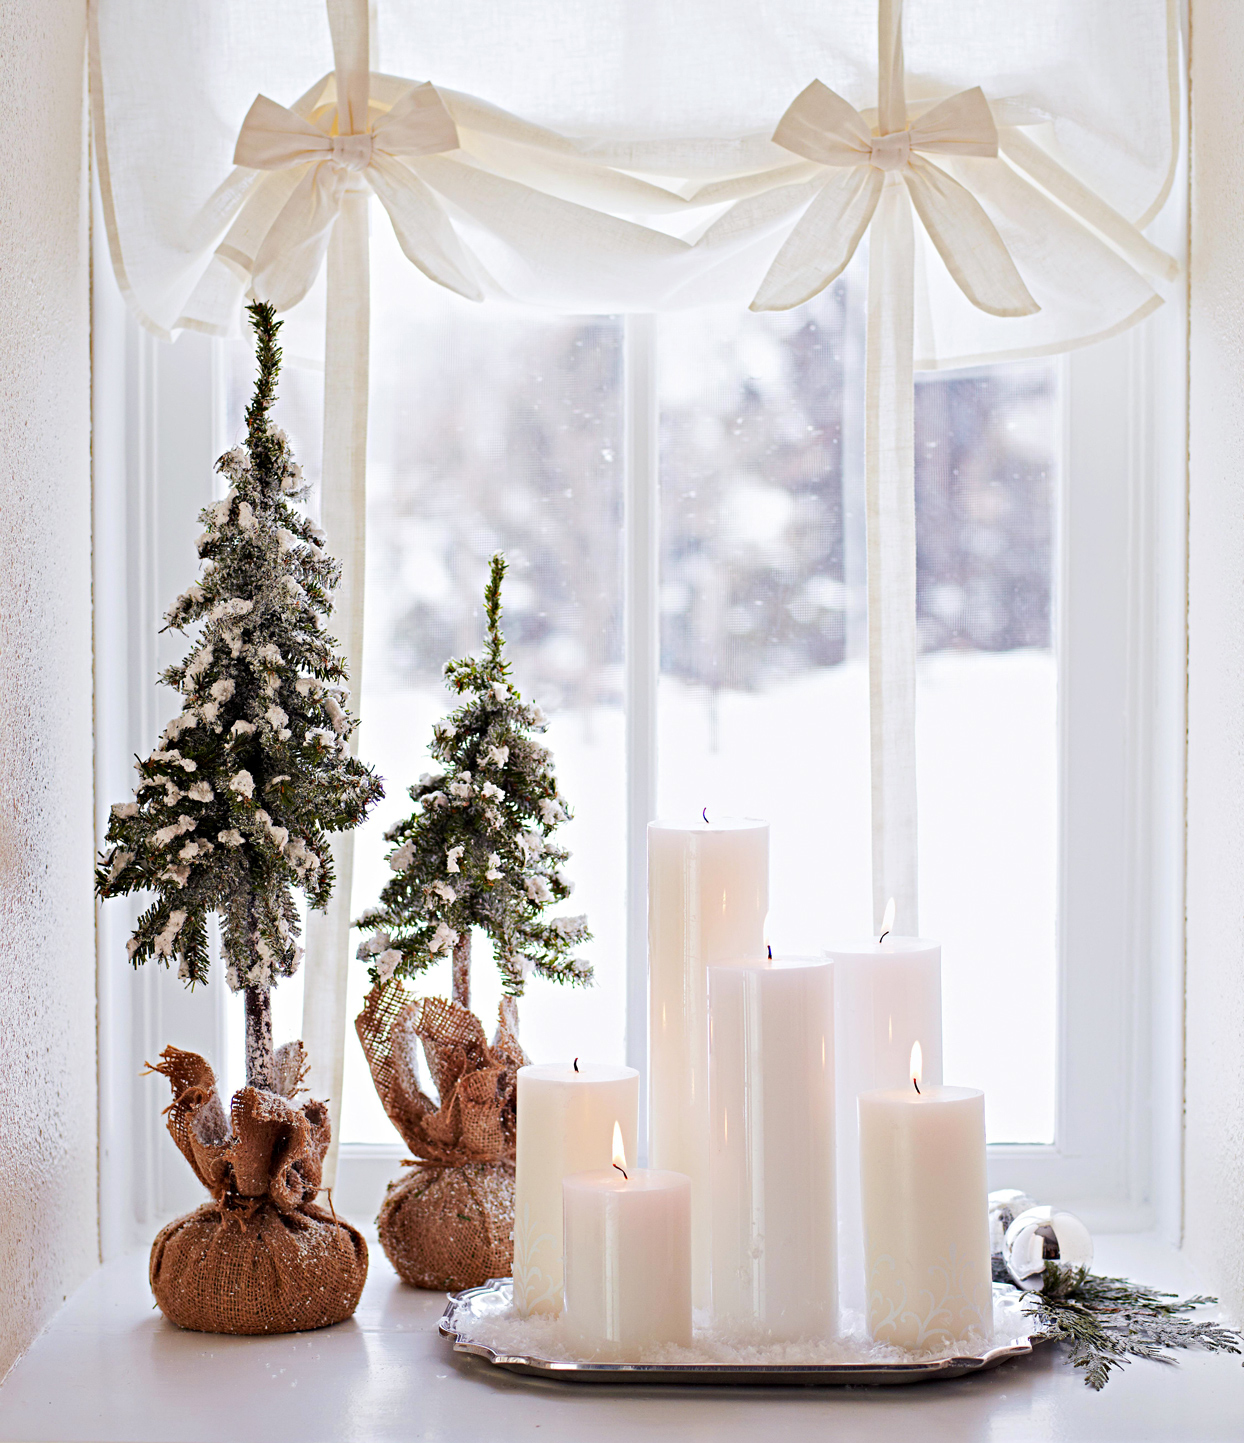 candles and mini trees in front of window